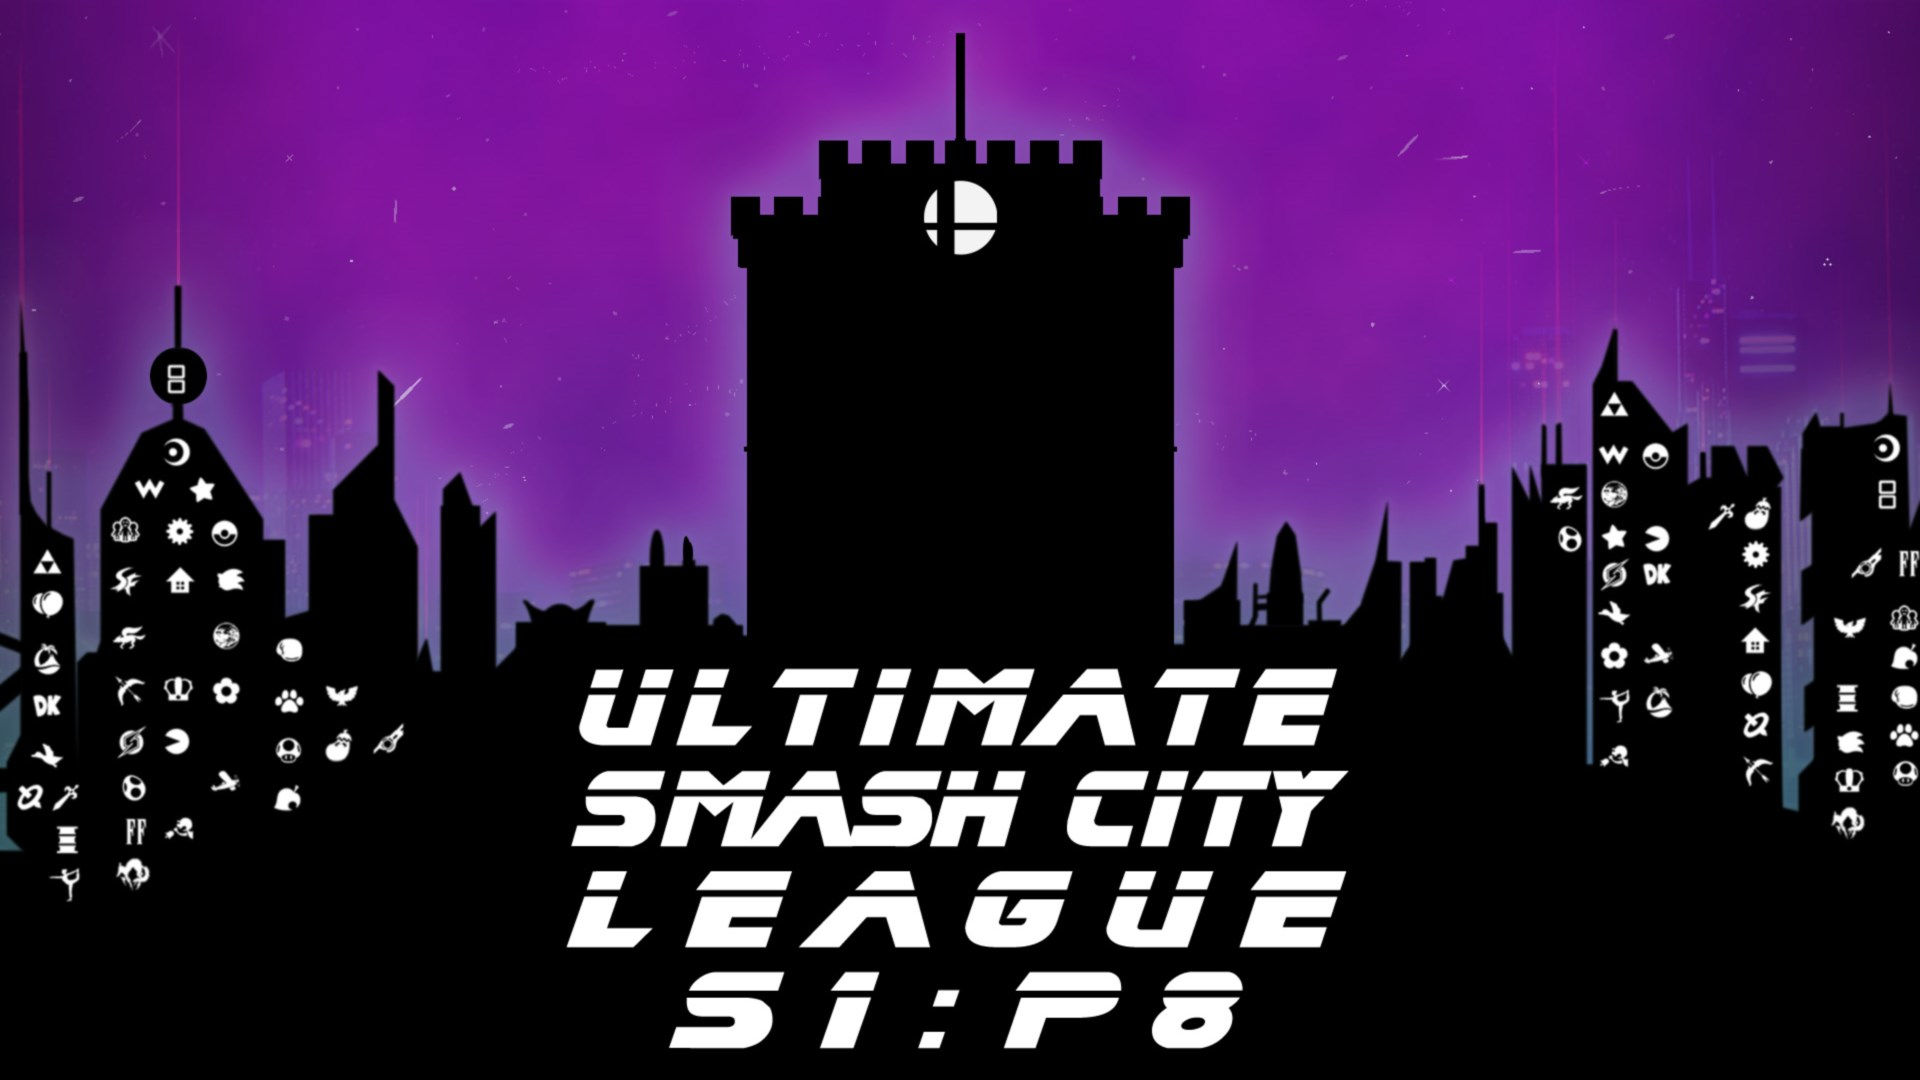 Ultimate Smash City League S1:P8 Θεσσαλονίκη